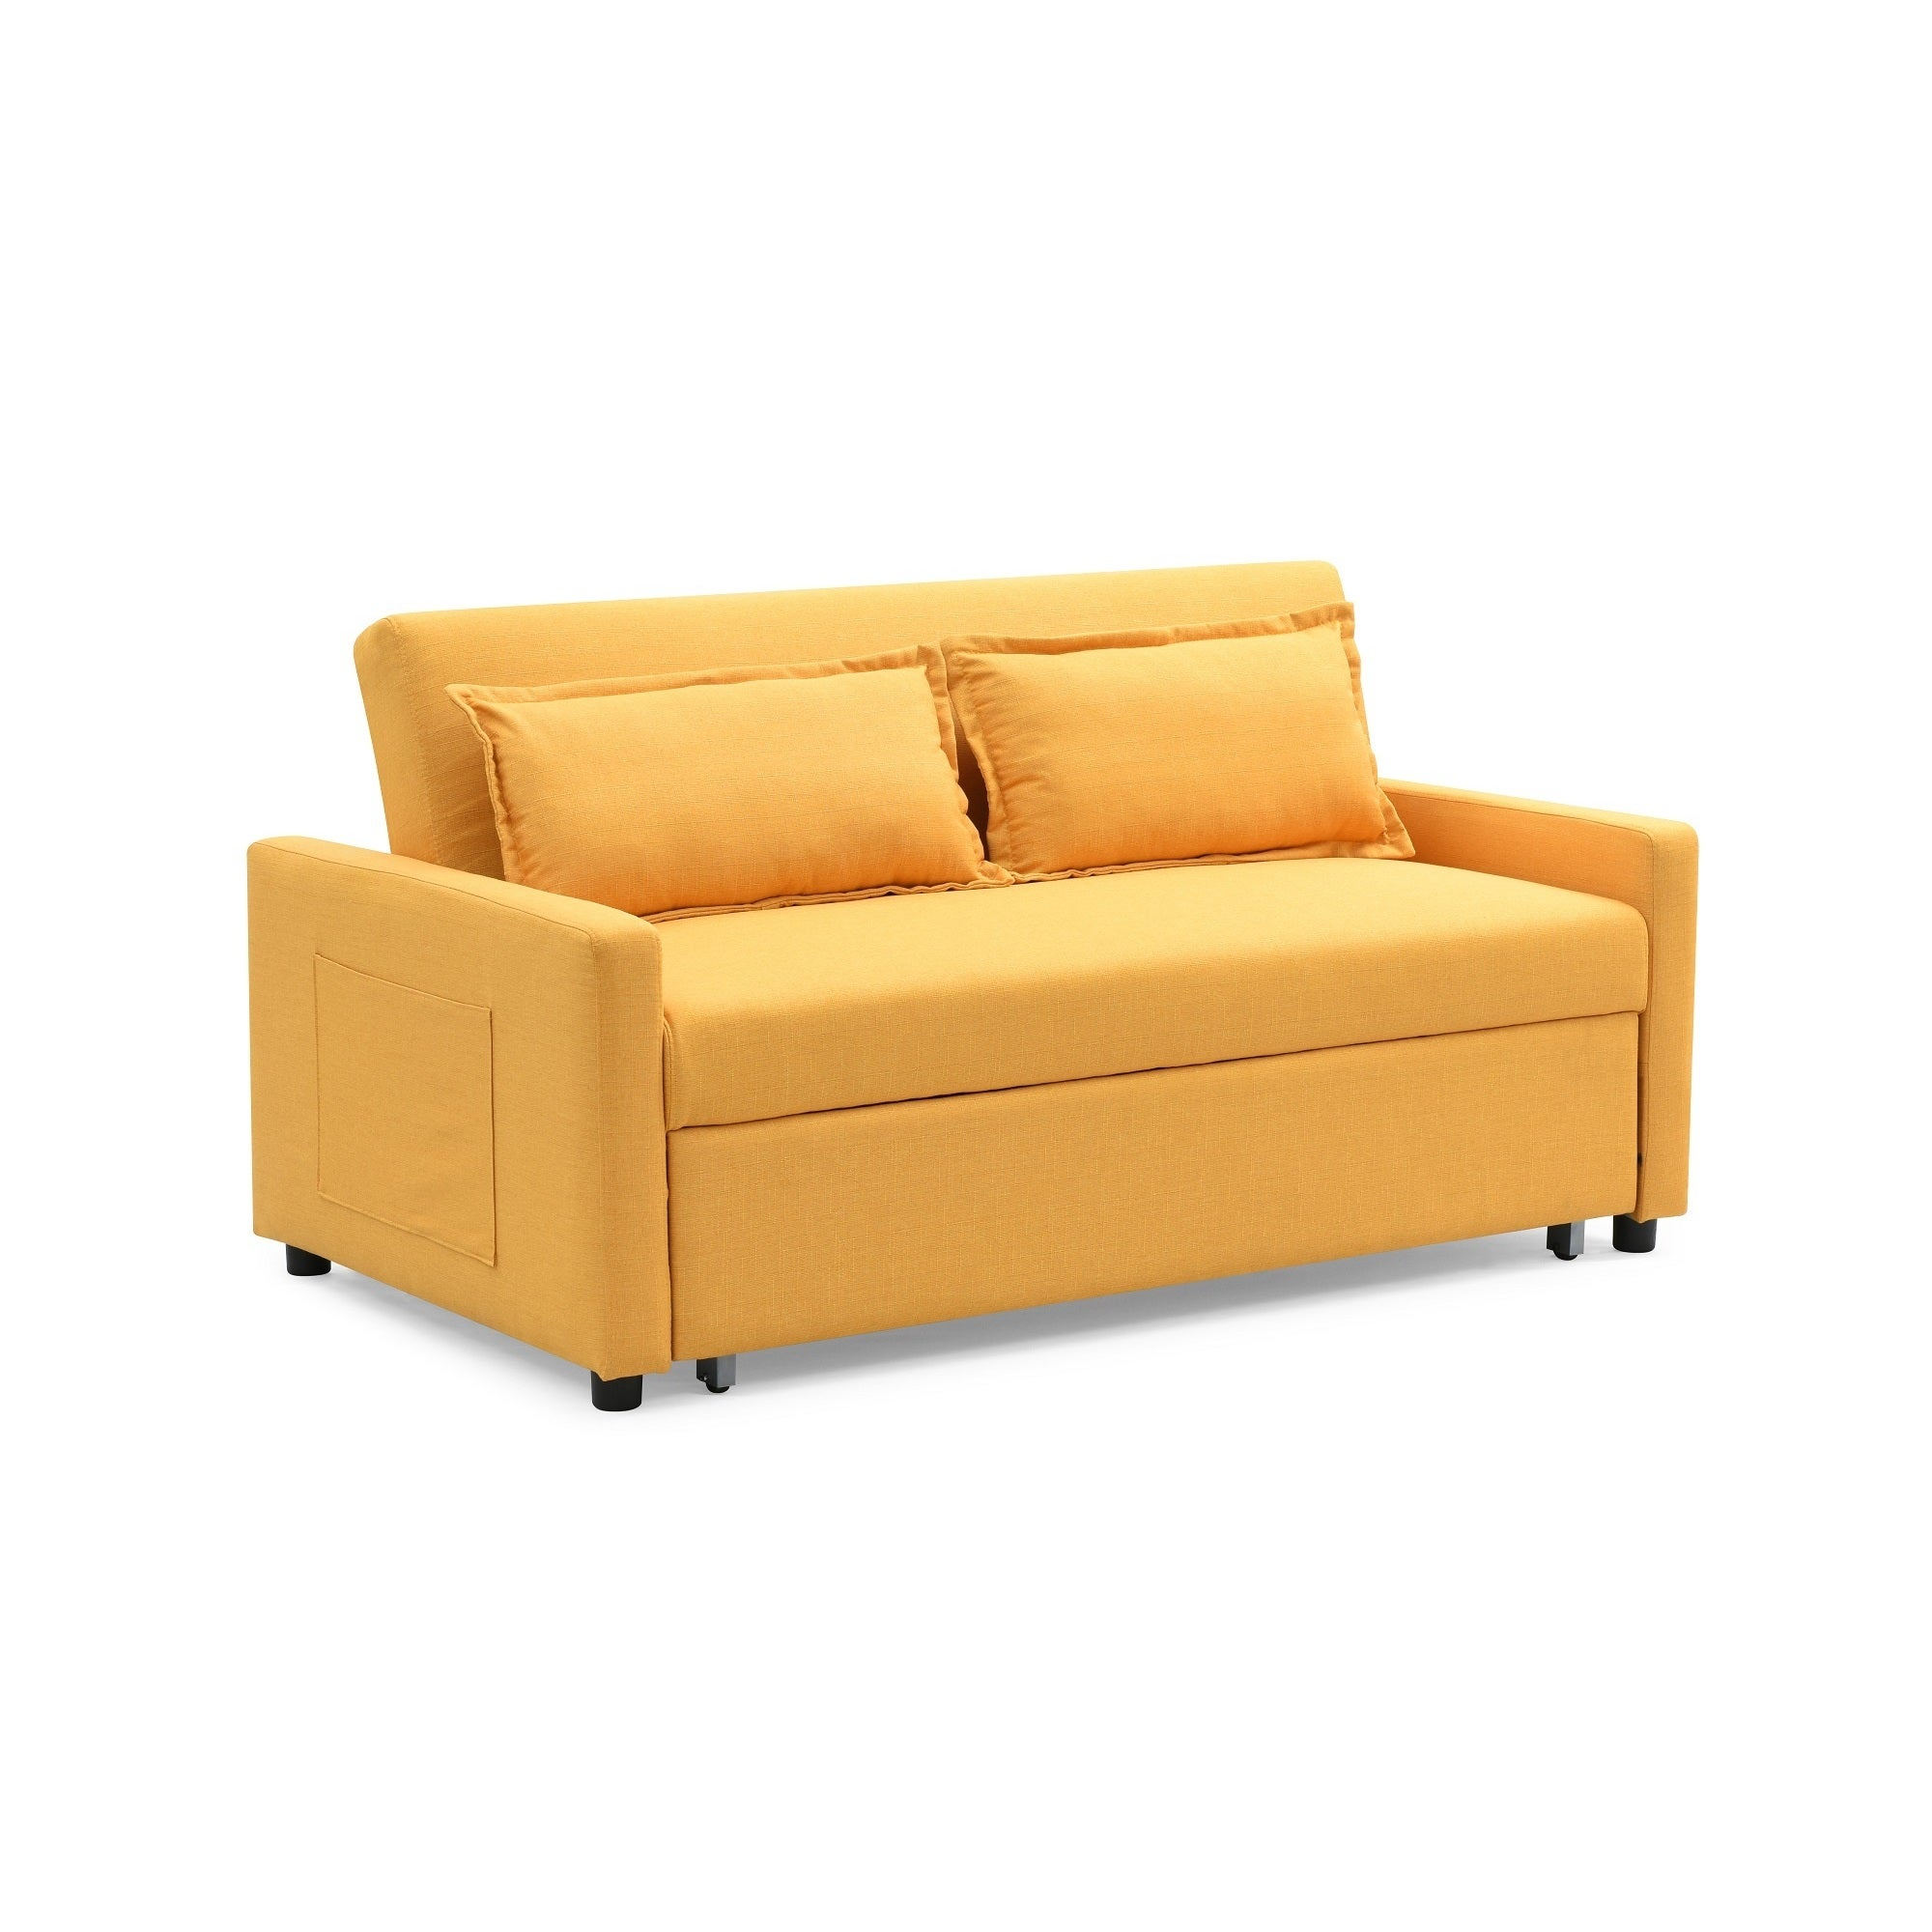 modern convertible sofa with pullout bed  free shipping today overstockcom  . modern convertible sofa with pullout bed  free shipping today